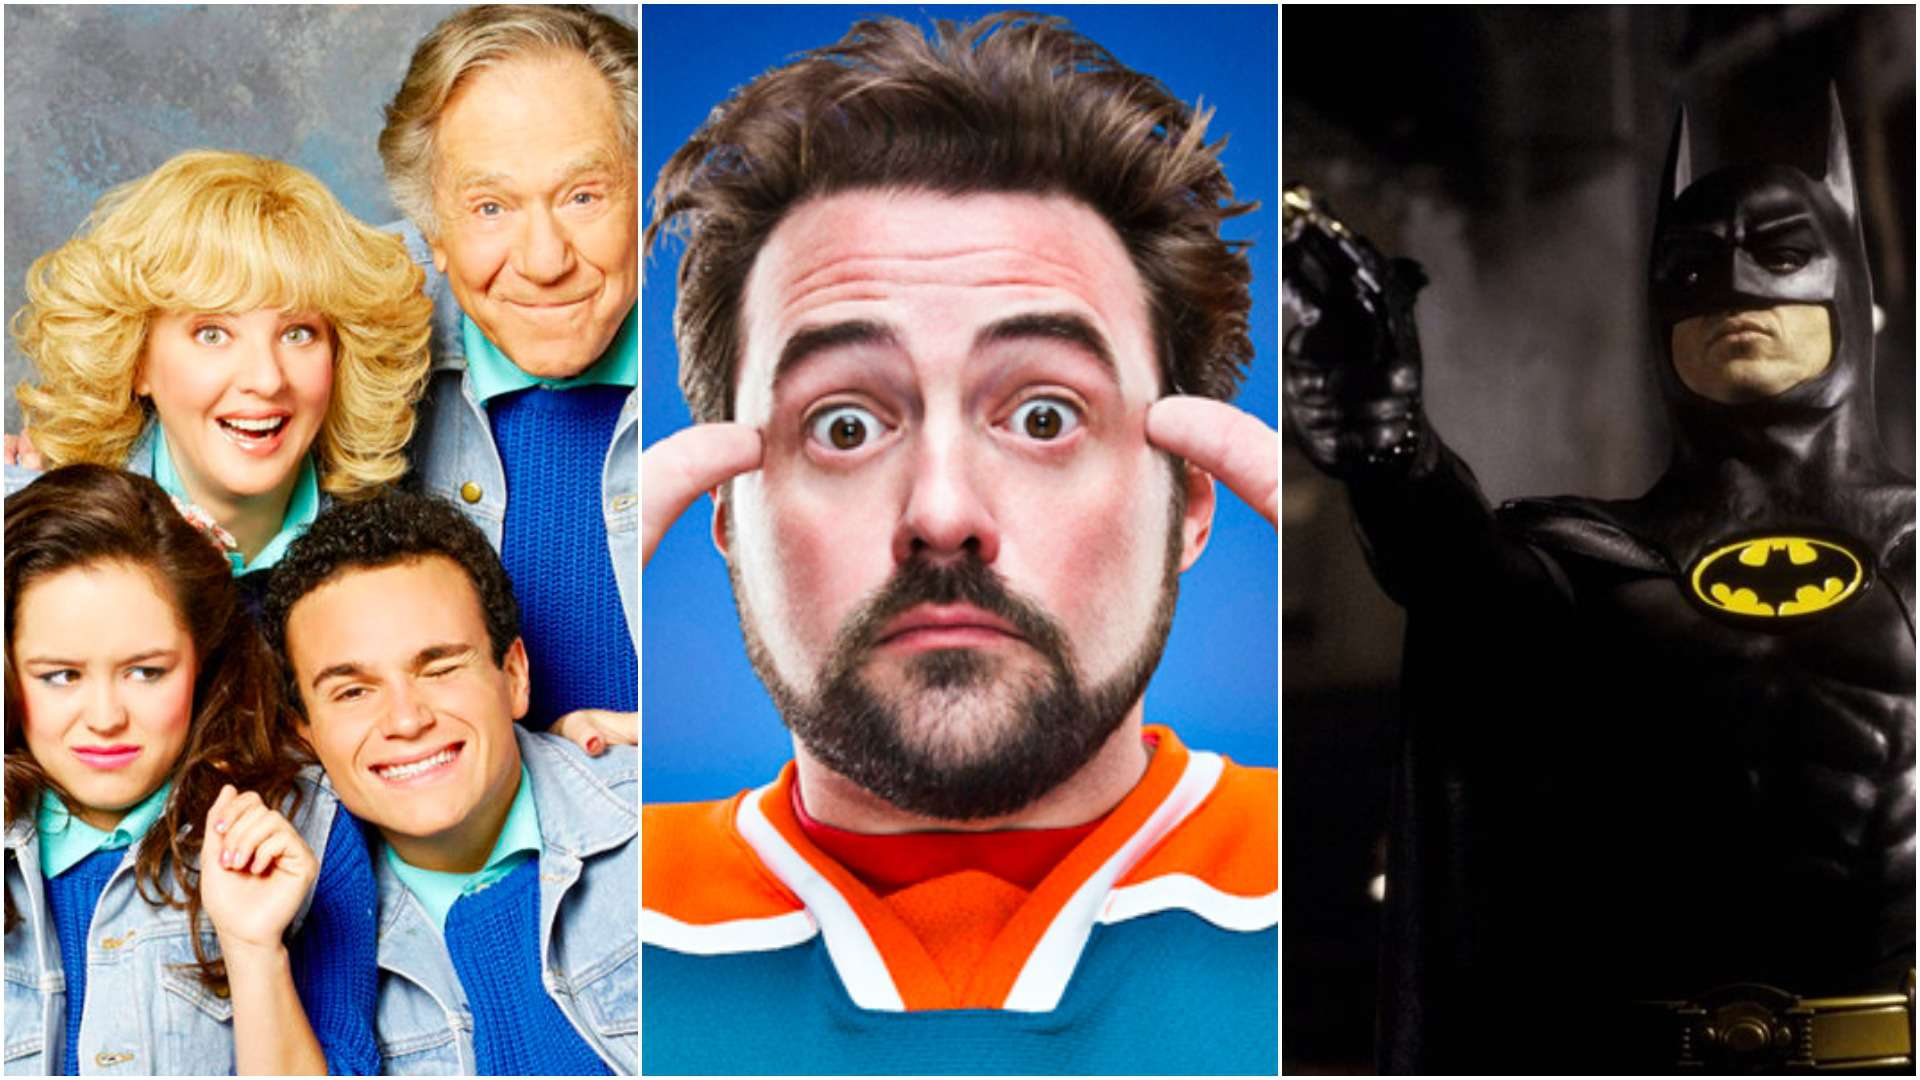 Kevin Smith To Direct A Batman '89 Episode Of The Goldbergs